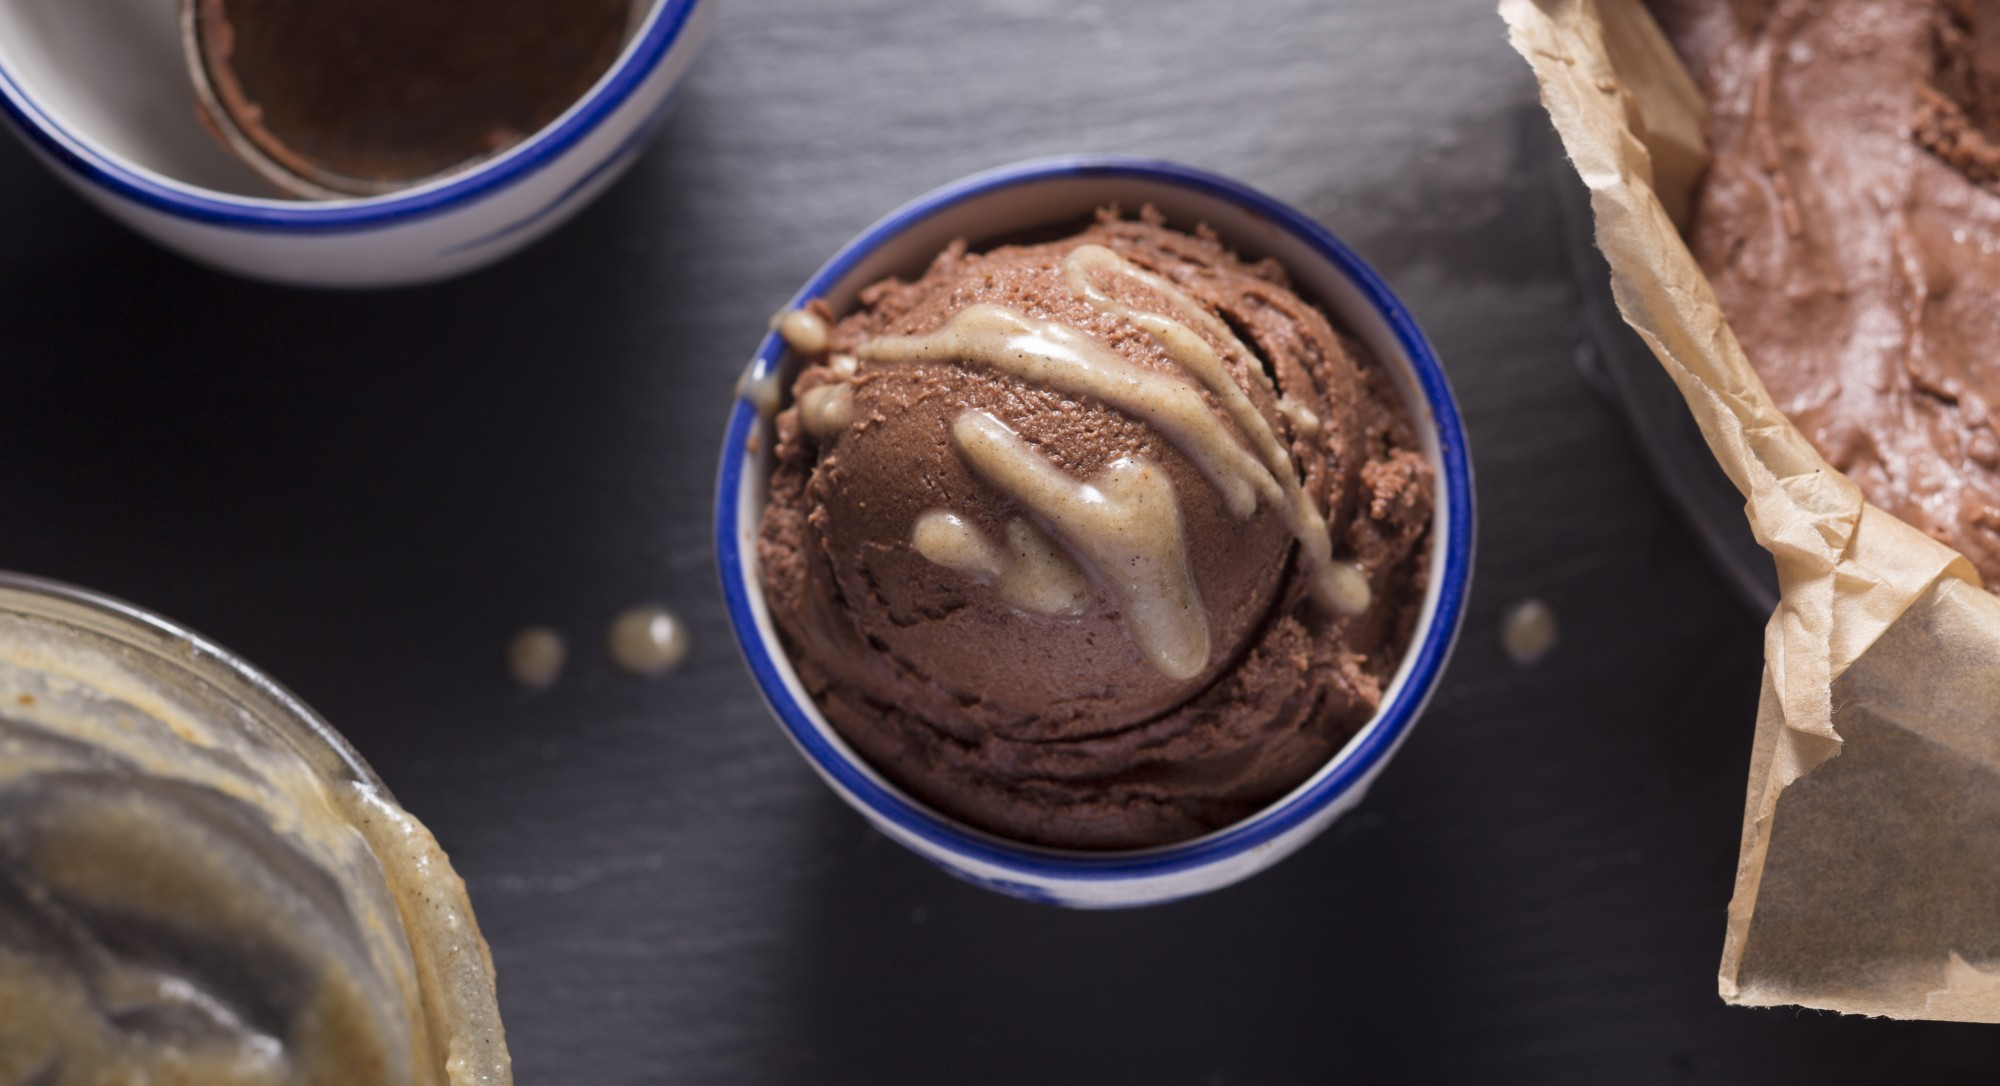 Sundae, Fun Day! Raw Chocolate Ice Cream Drizzled with Caramel